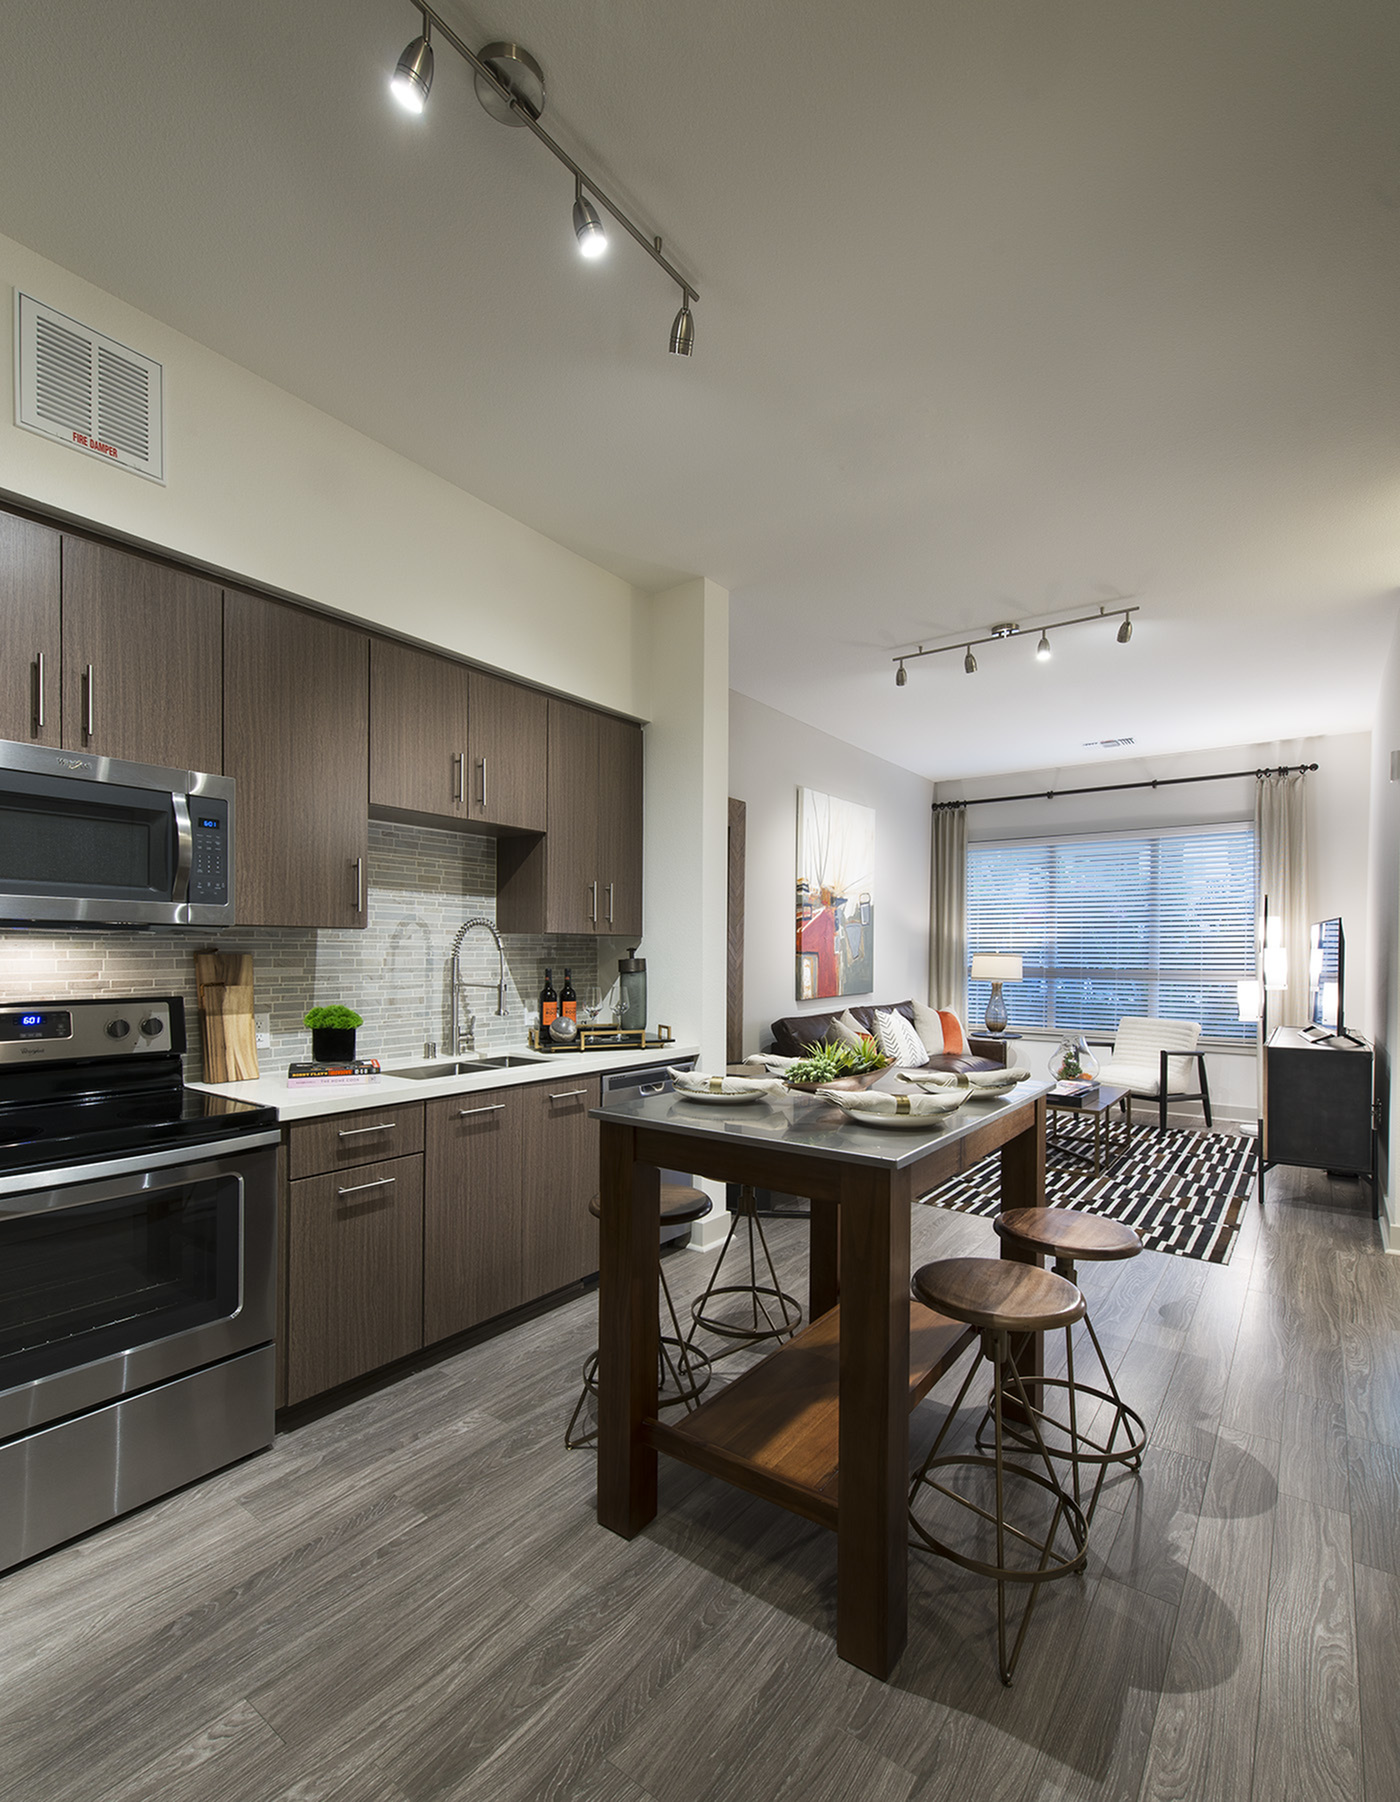 Image of Gourmet chef kitchens with stainless steel appliances for Hanover Mission Gorge